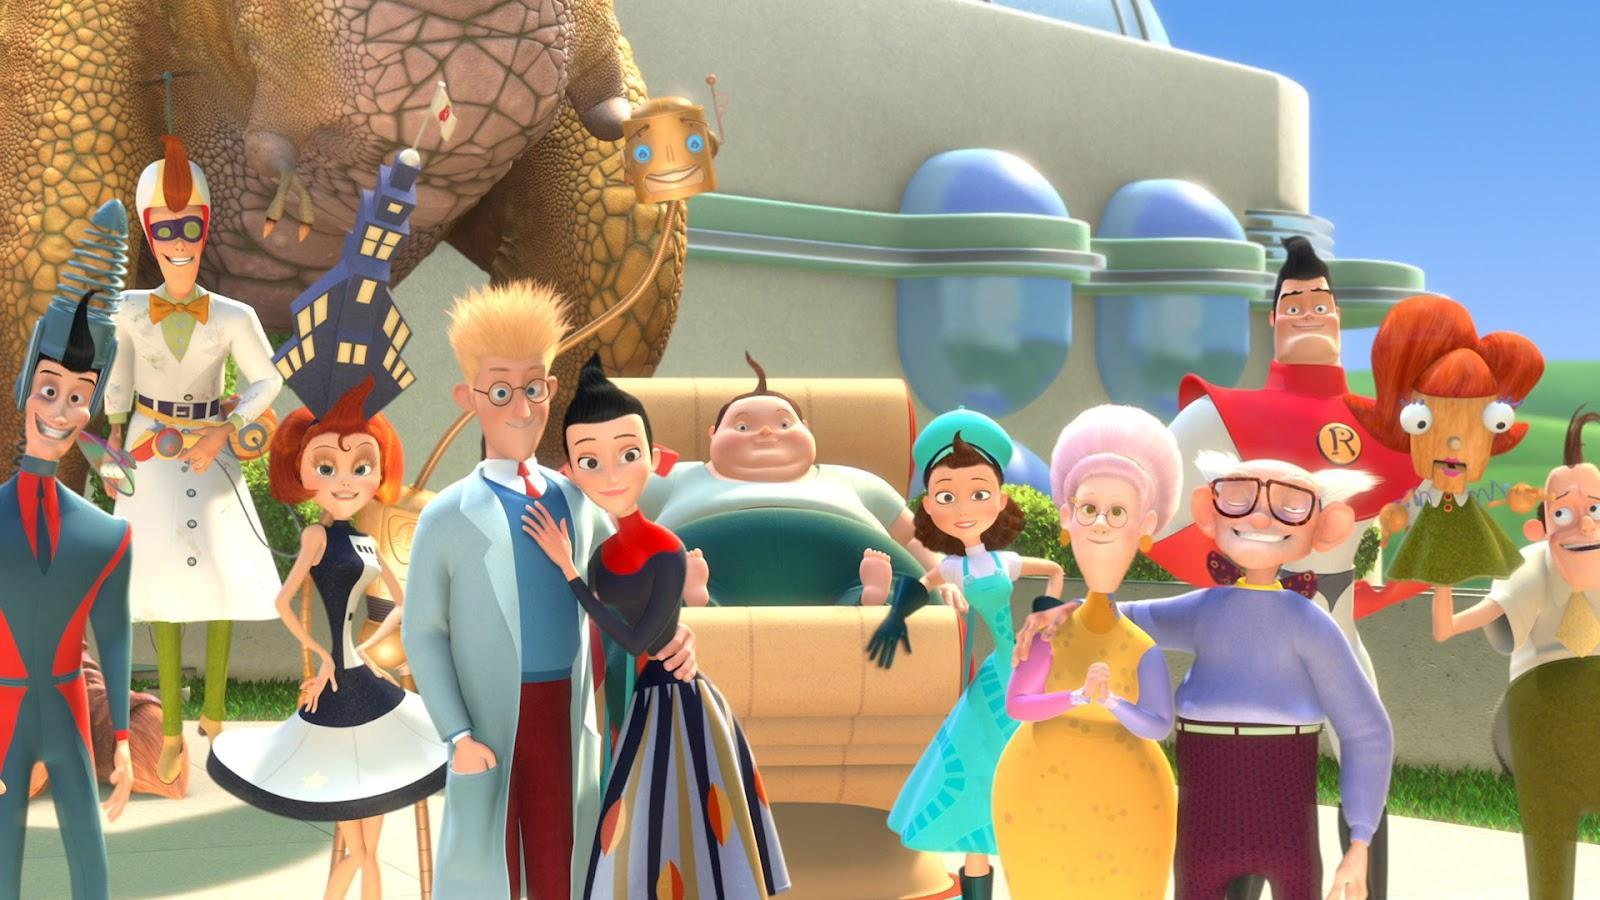 Who else remembers the 2007 movie Meet The Robinsons